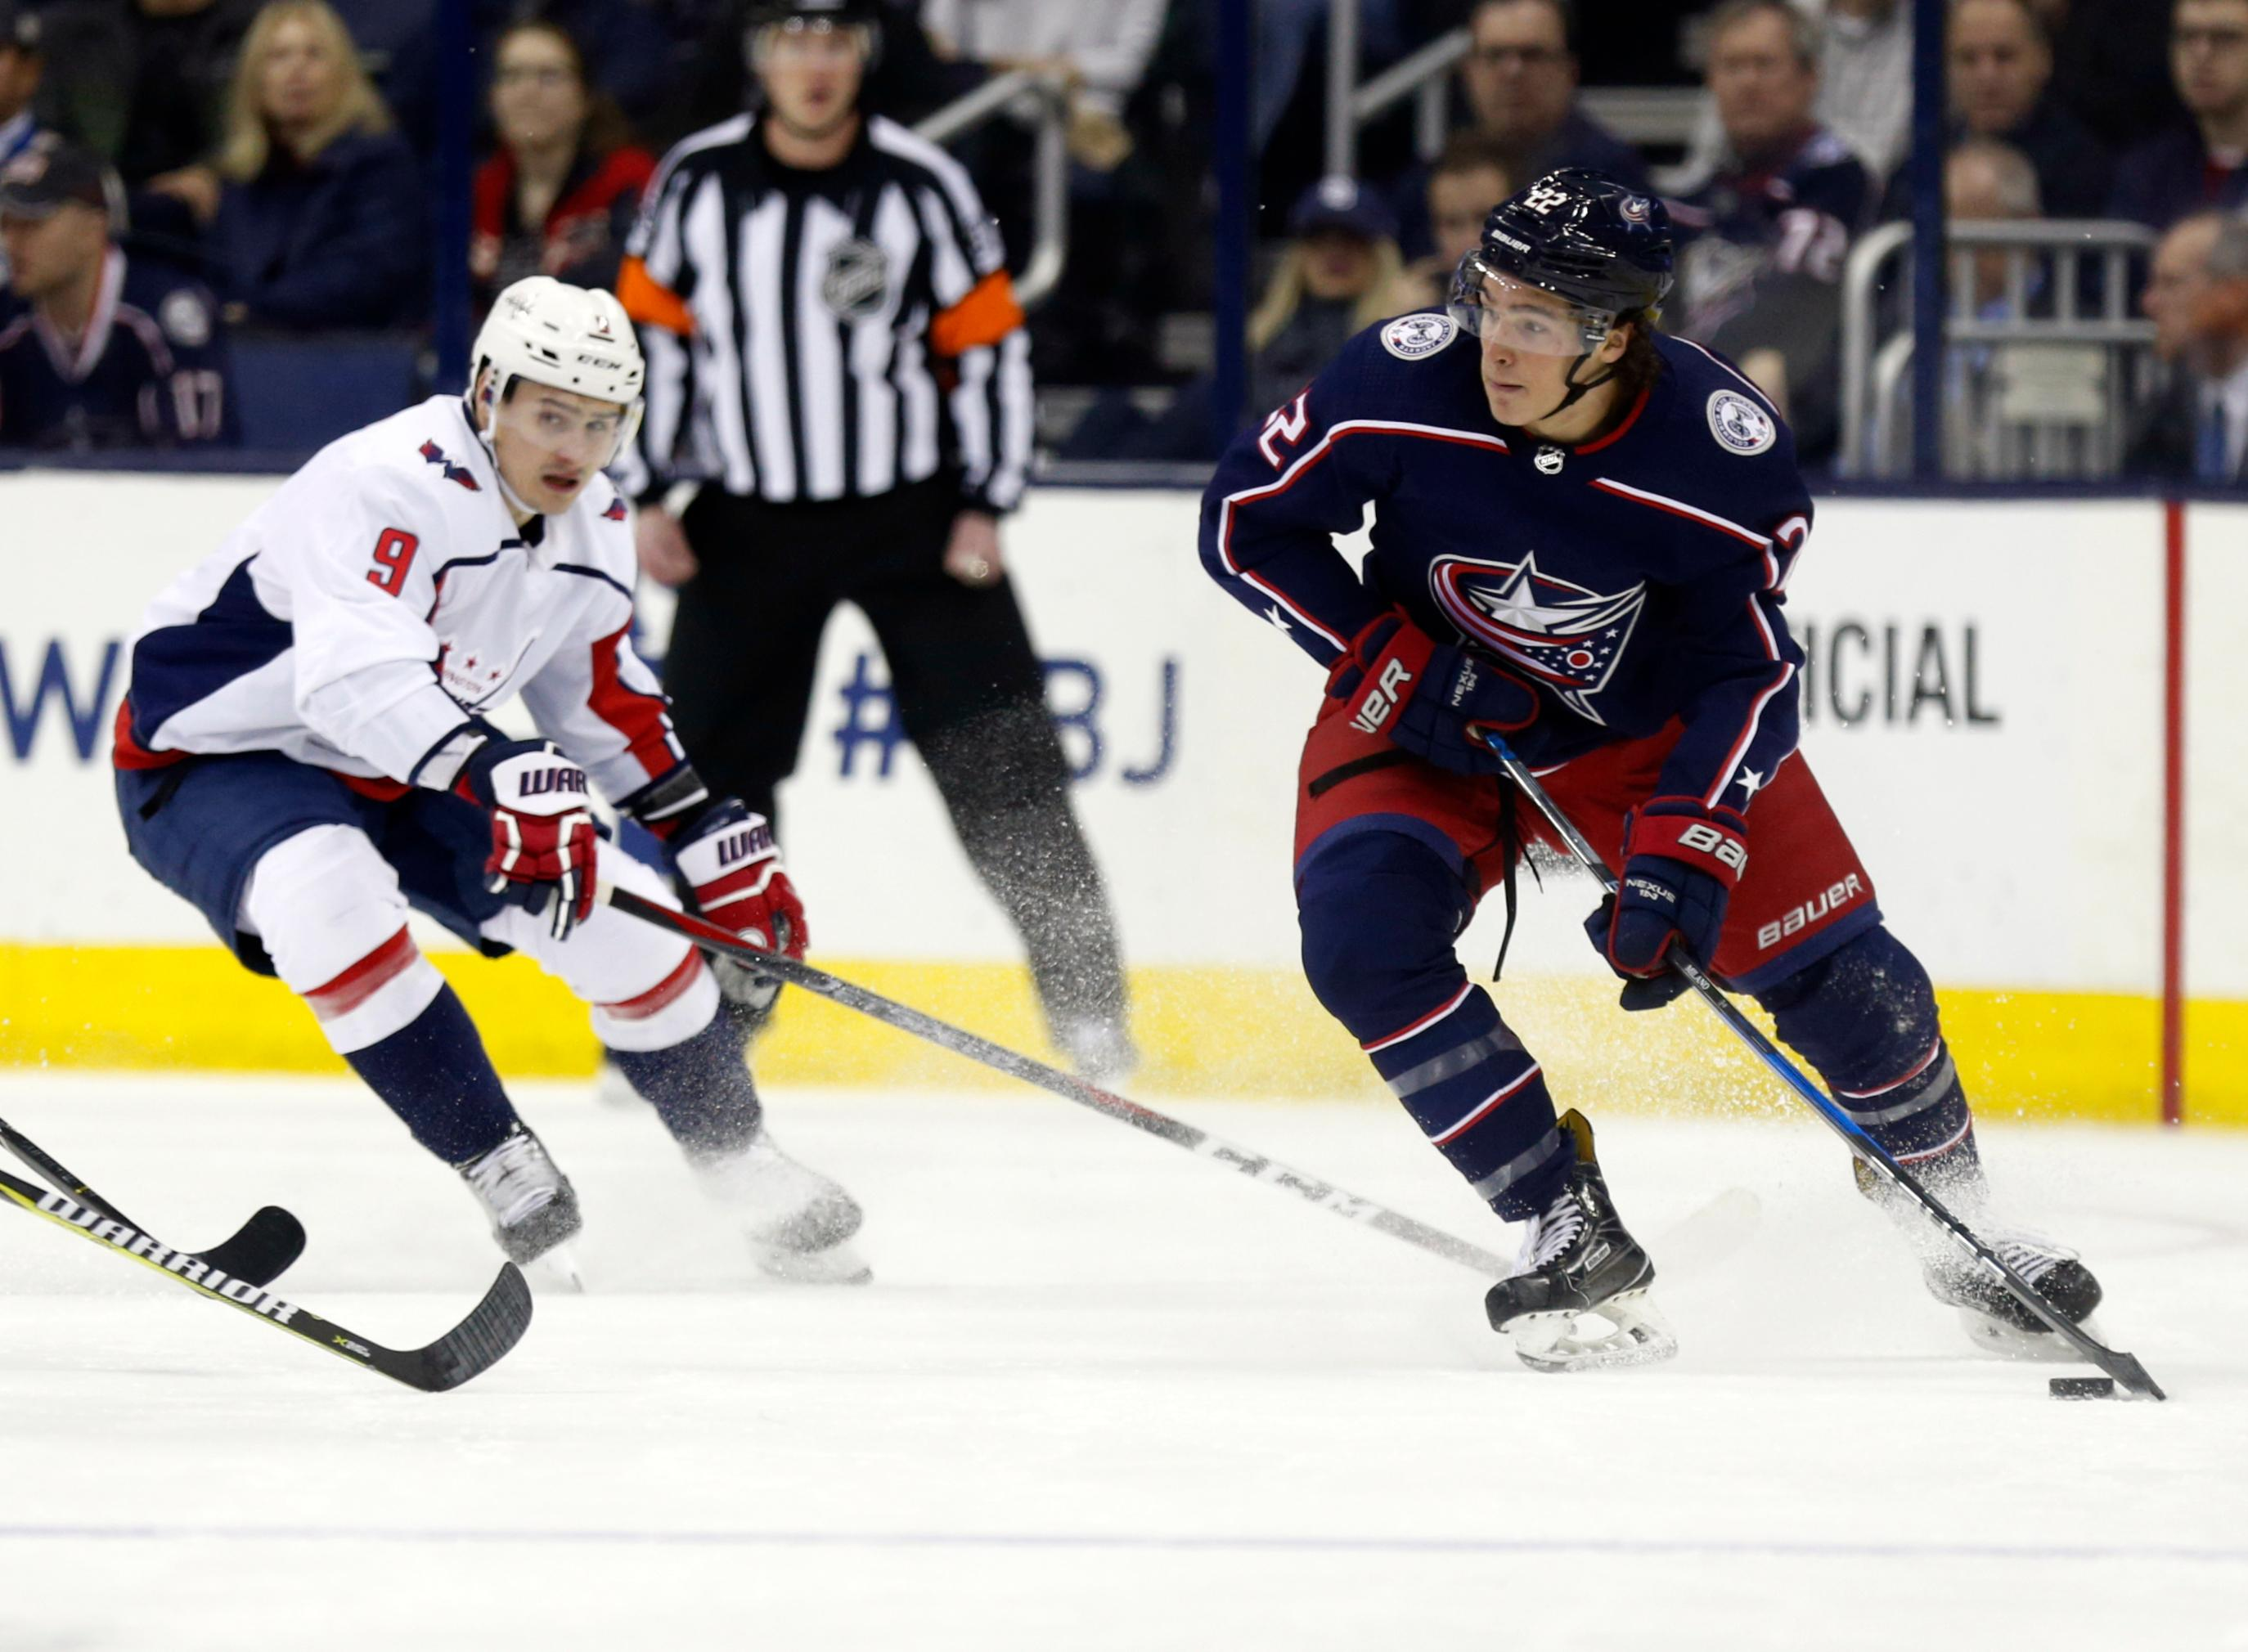 Columbus Blue Jackets forward Sonny Milano, right, controls the puck against Washington Capitals defenseman Dmitry Orlov, of Russia, during the first period of an NHL hockey game in Columbus, Ohio, Monday, Feb. 26, 2018. (AP Photo/Paul Vernon)